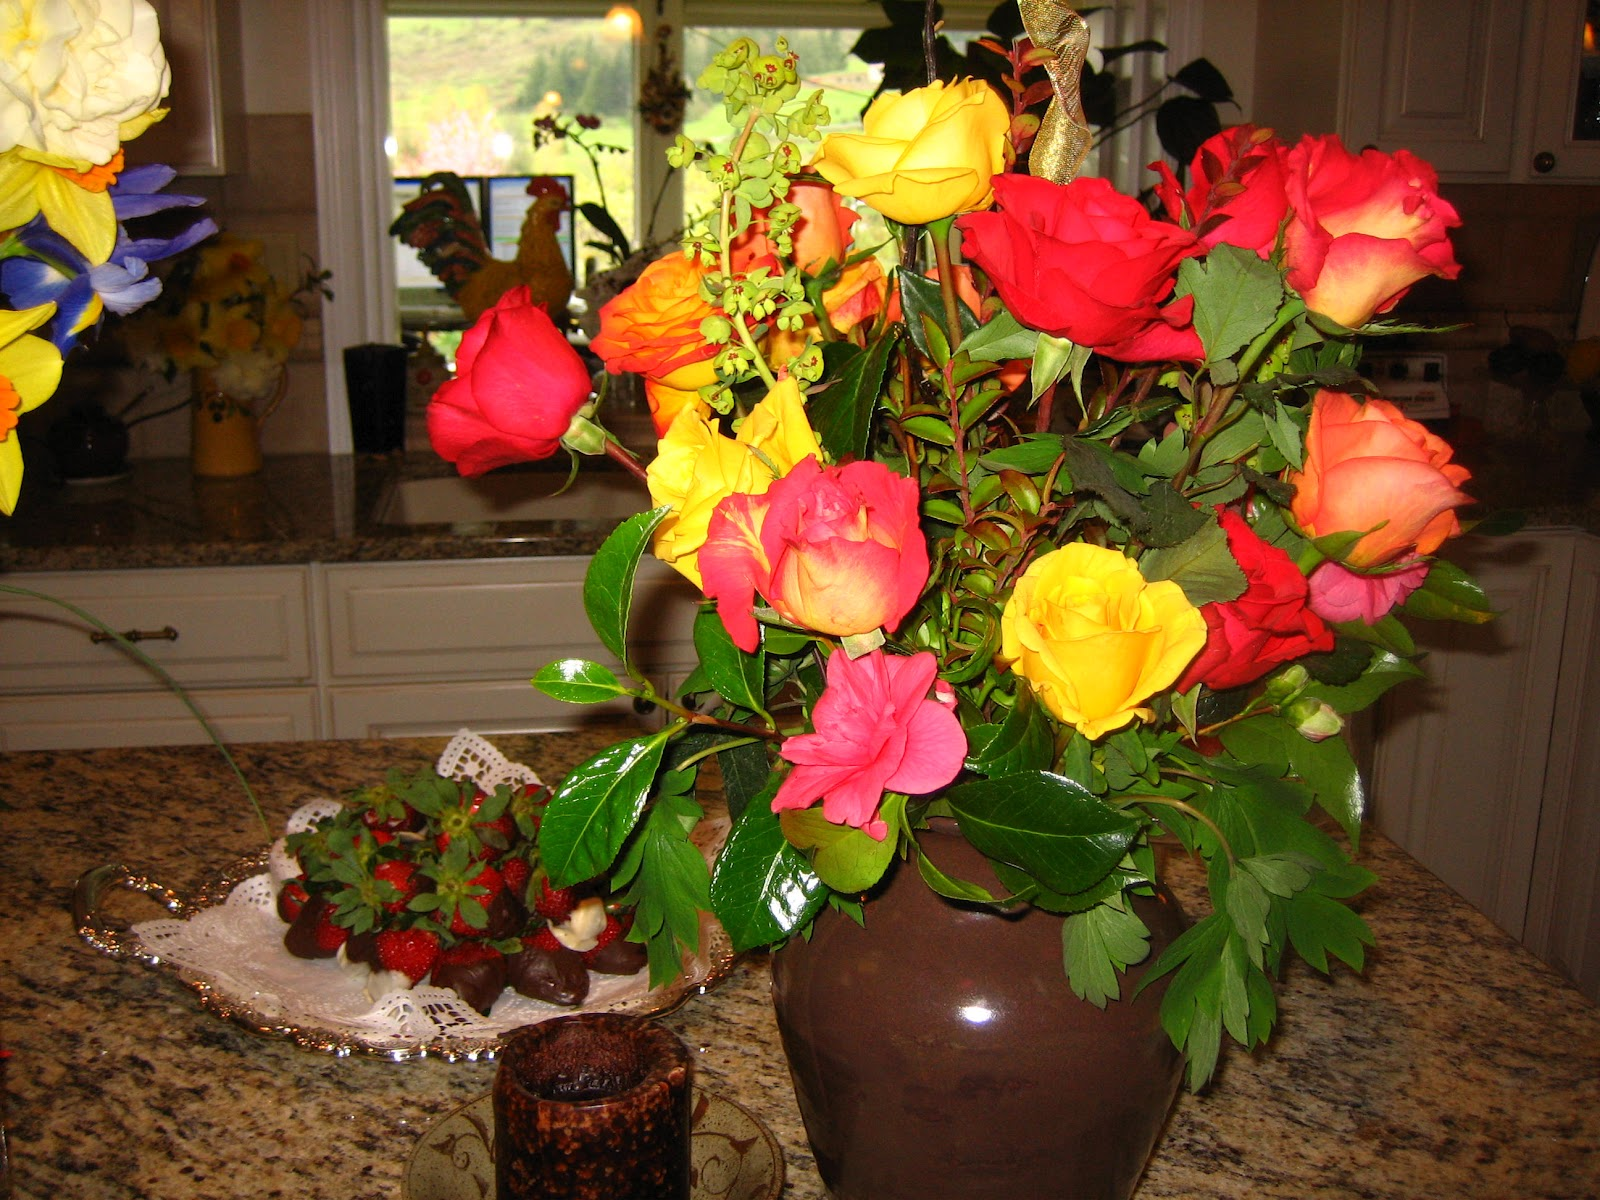 Peonies Peonies Peonies Flower Arrangement With Peonies